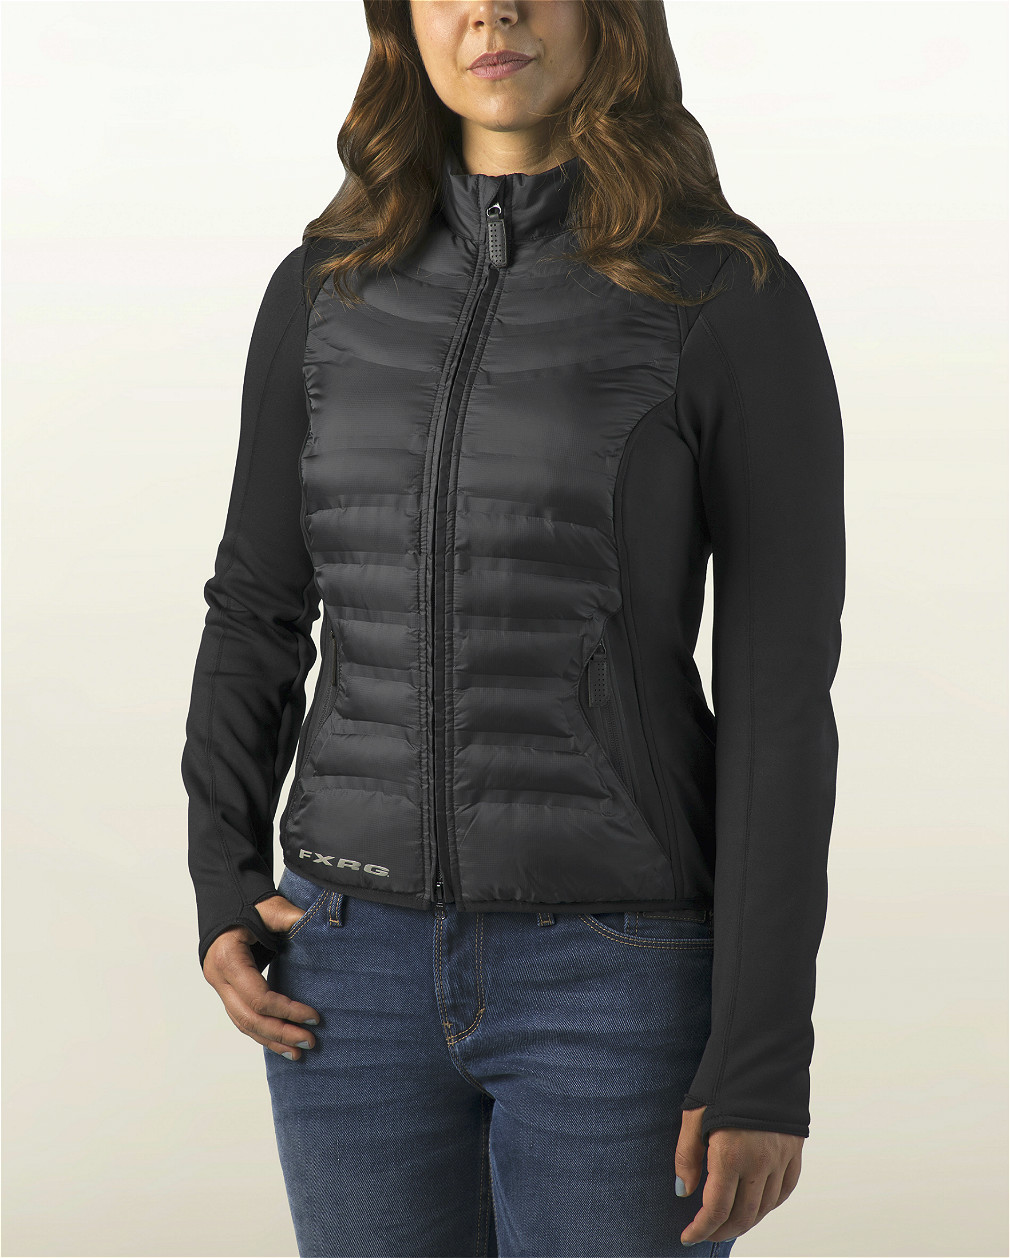 Harley-Davidson® Women's FXRG® Mid-Layer | 3M® Thinsulate® Insulation